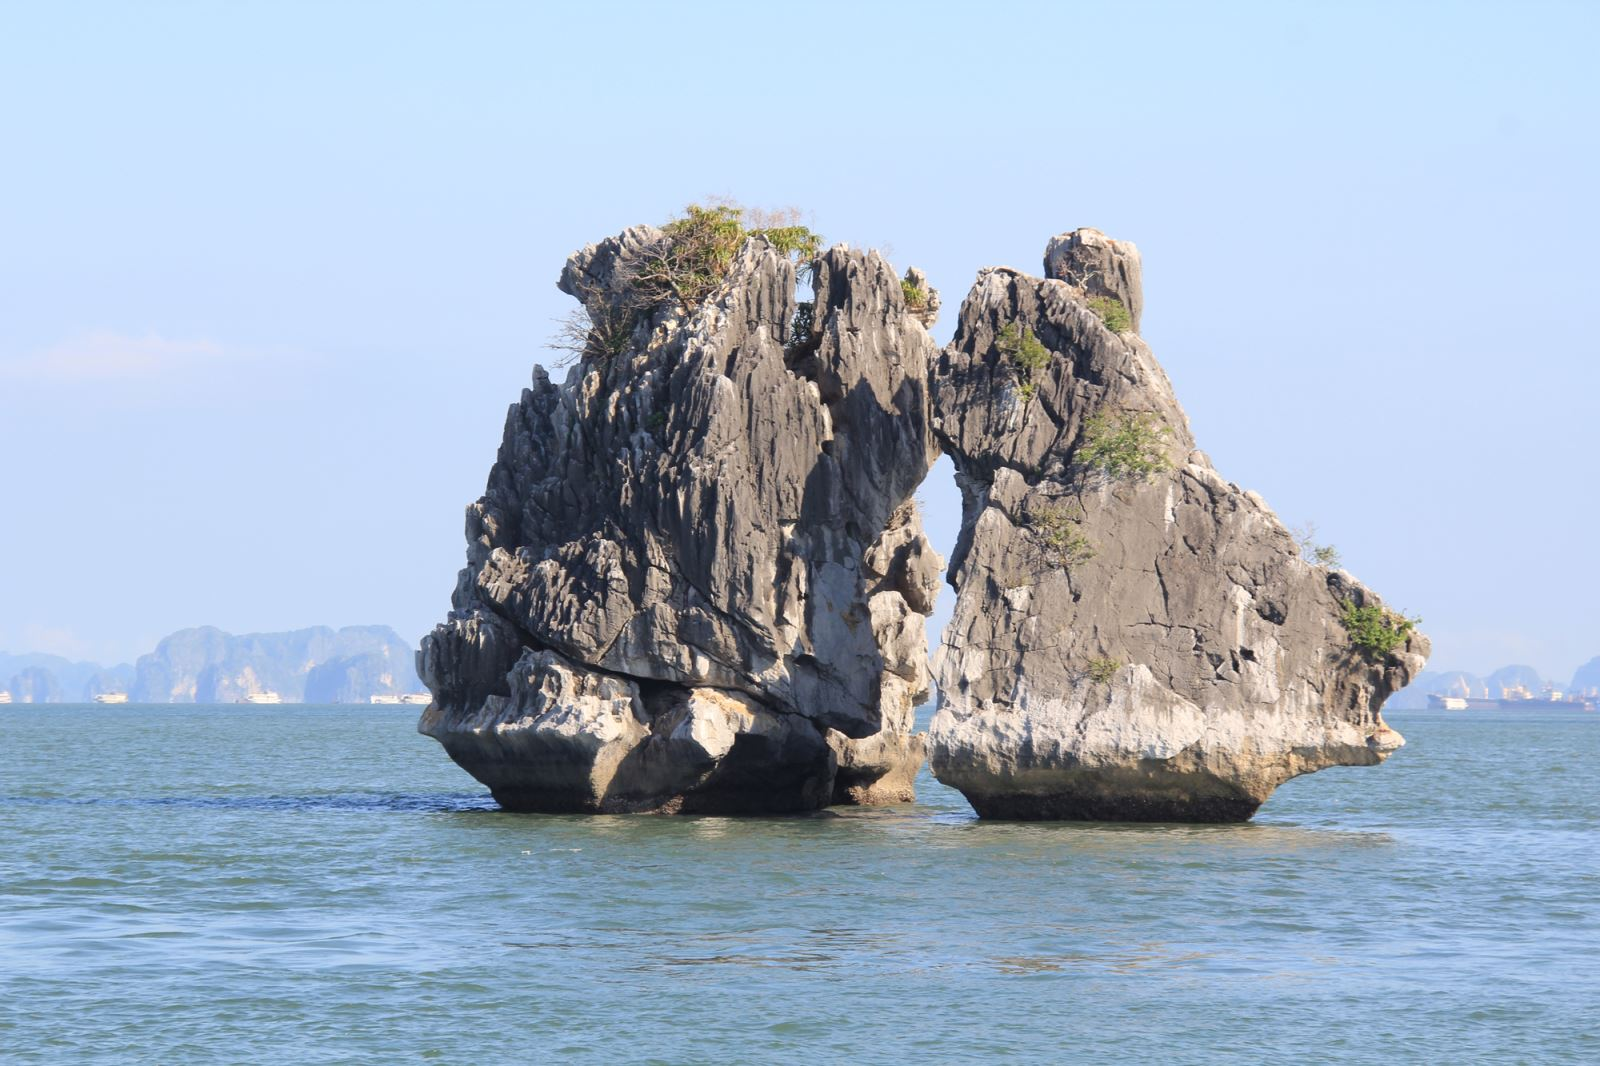 kissing chicken rock in Halong bay